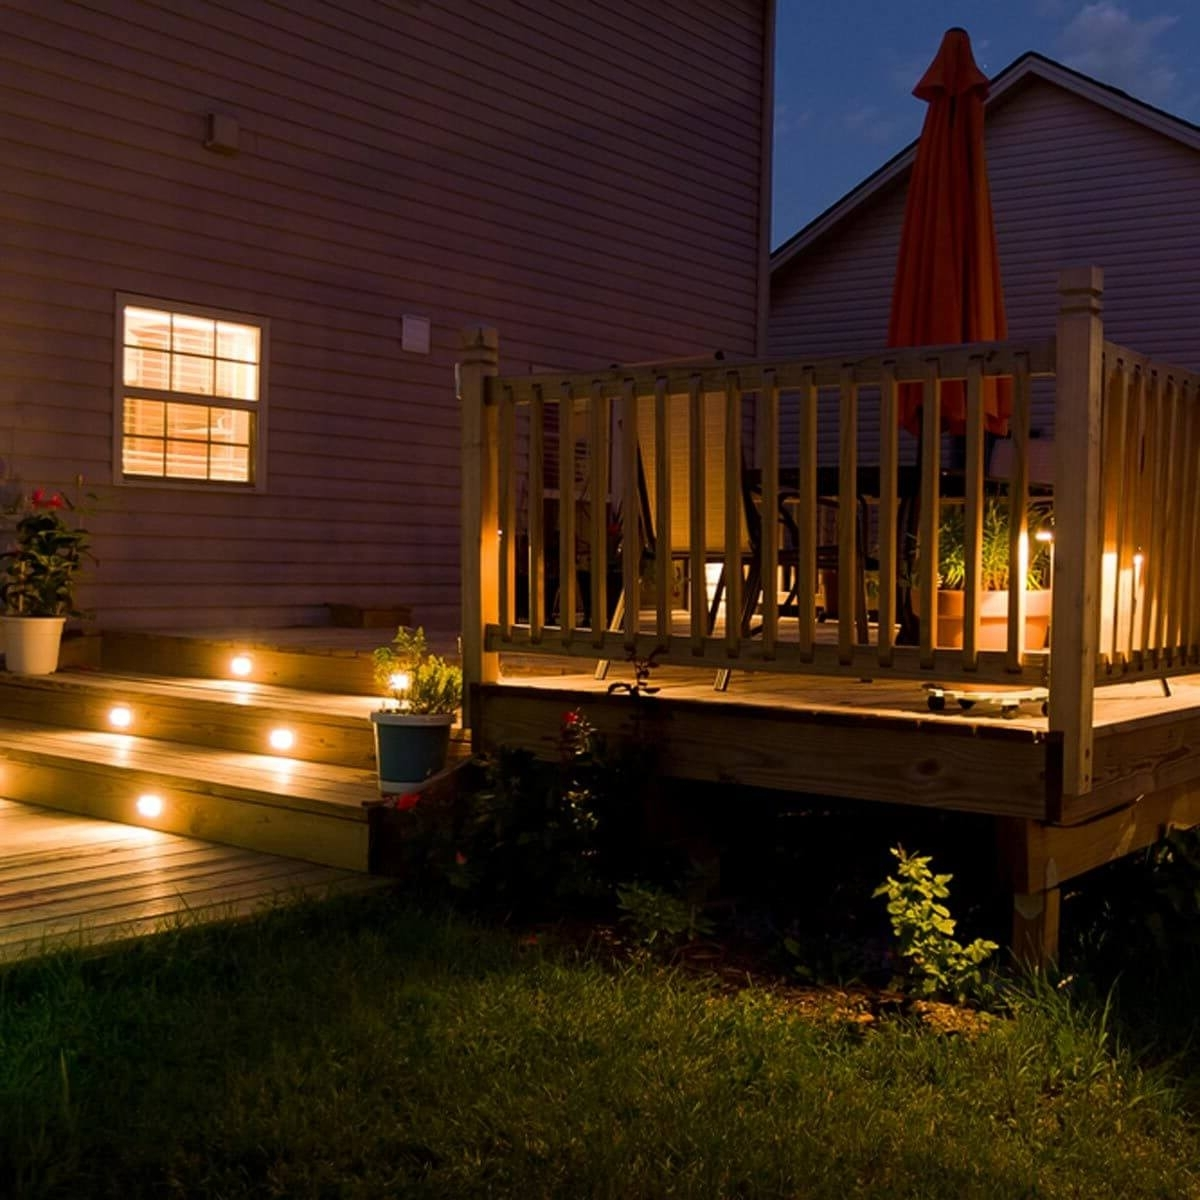 Latest Outdoor Deck Lanterns Within 12 Ideas For Lighting Up Your Deck — The Family Handyman (View 4 of 20)